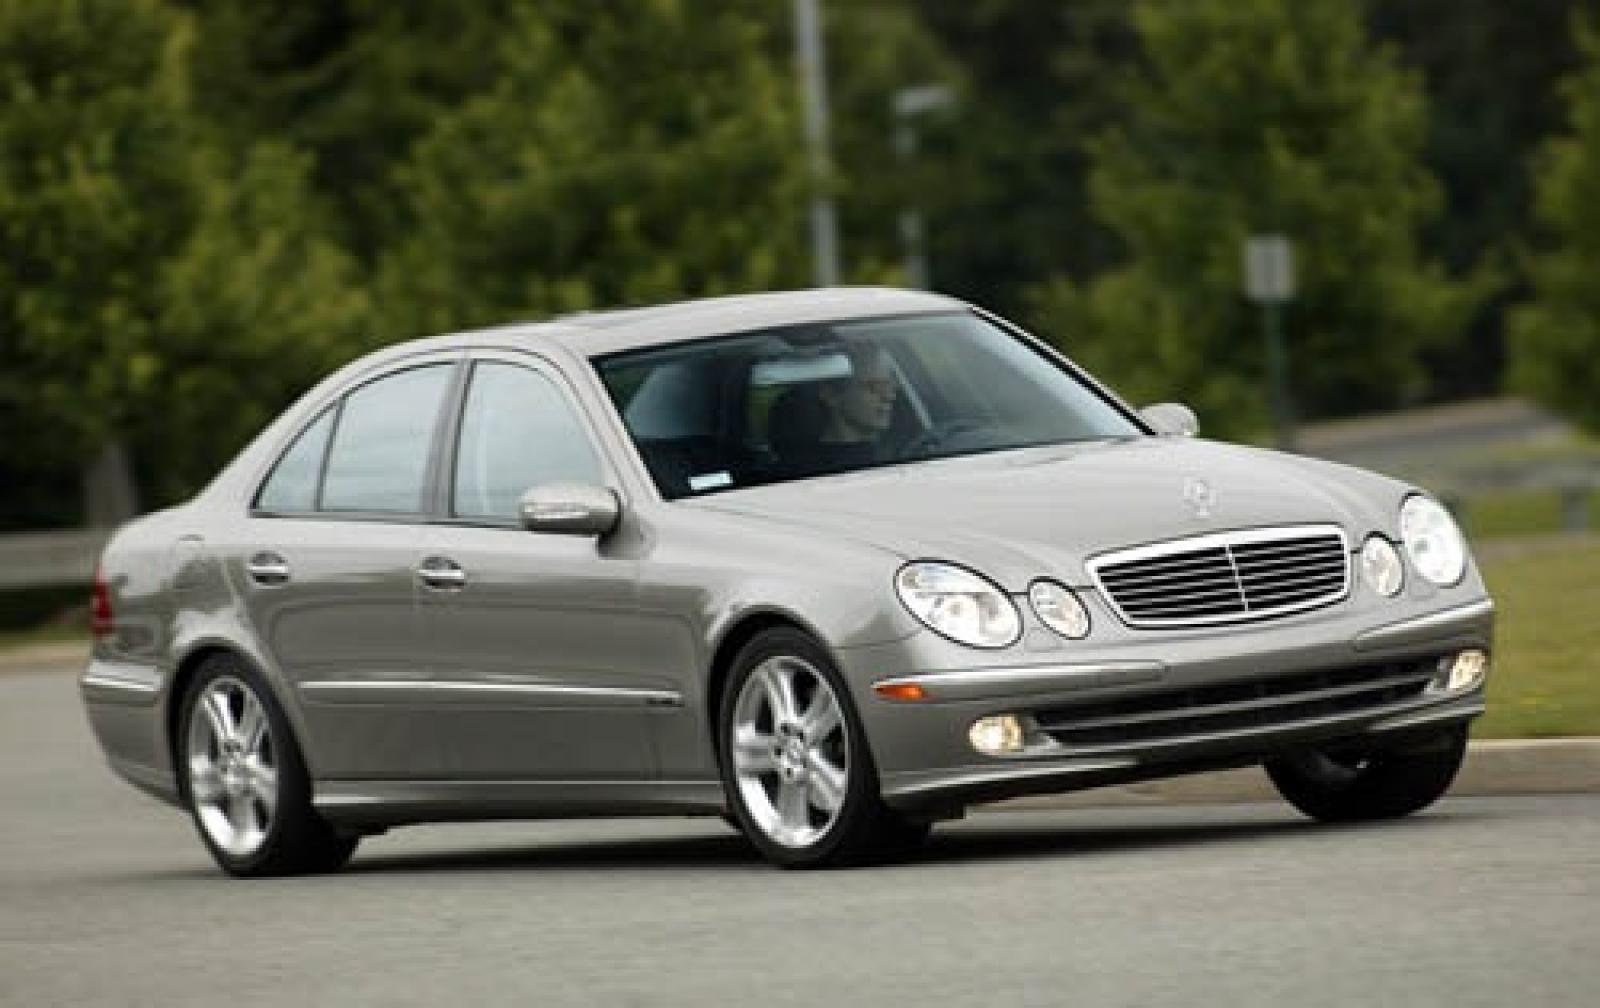 2005 mercedes benz e class information and photos zombiedrive. Black Bedroom Furniture Sets. Home Design Ideas